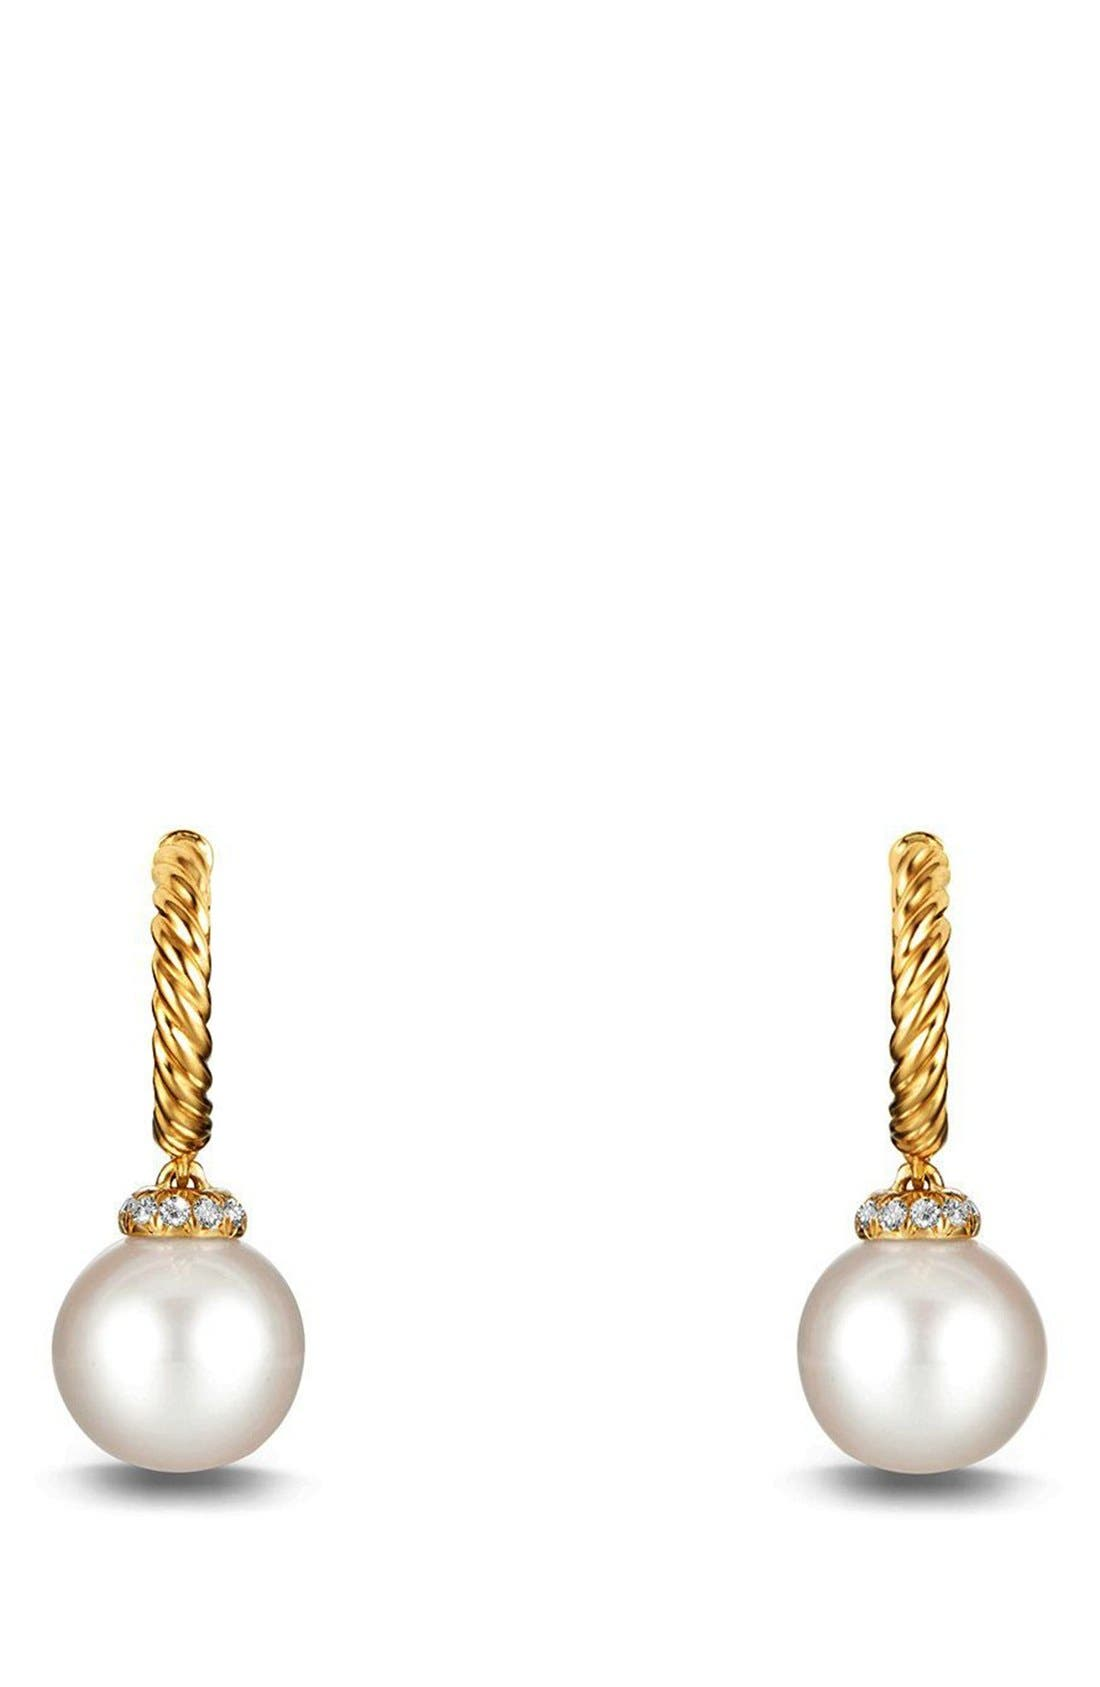 David Yurman 'Solari' Hoop Earring with Diamonds and Pearls in 18K Gold